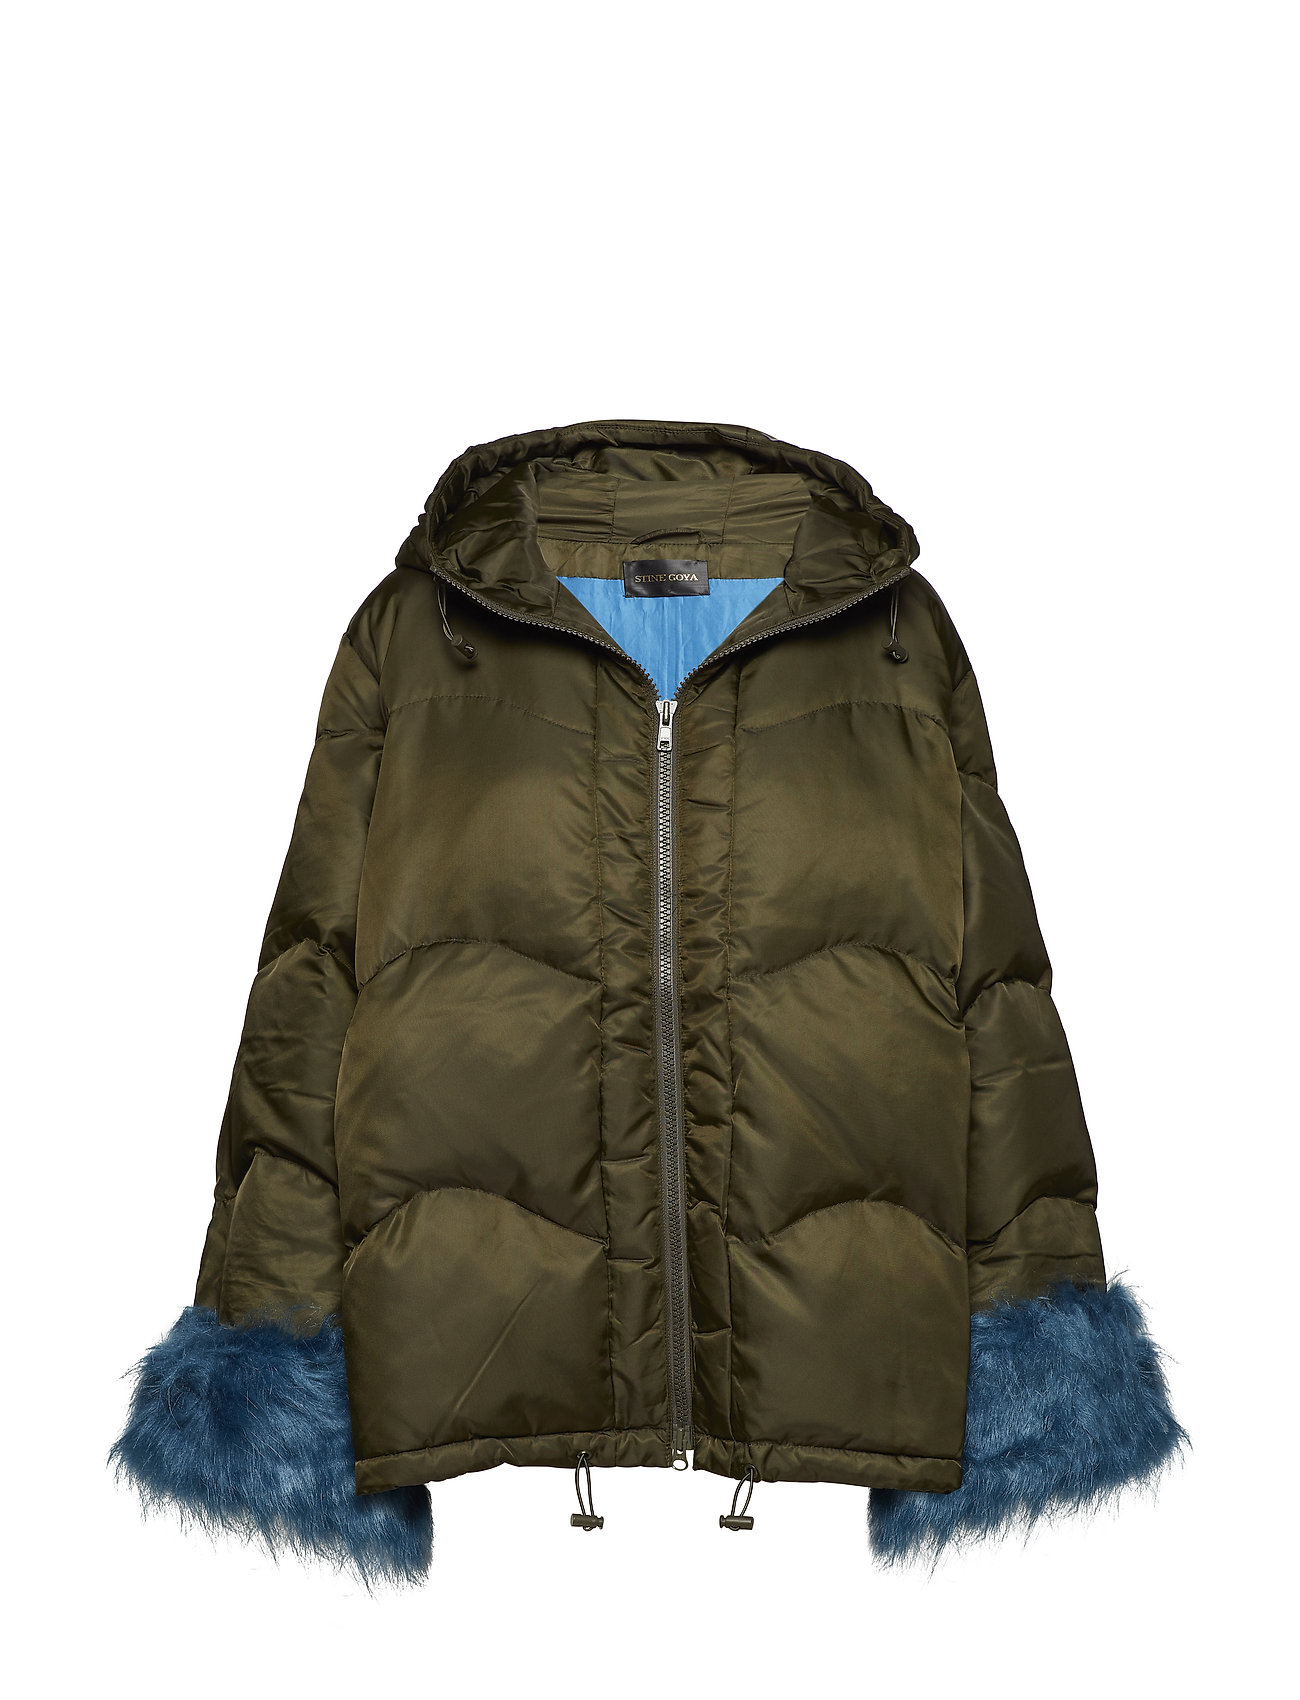 STINE GOYA Taylor, 432 Down Jacket - IVY